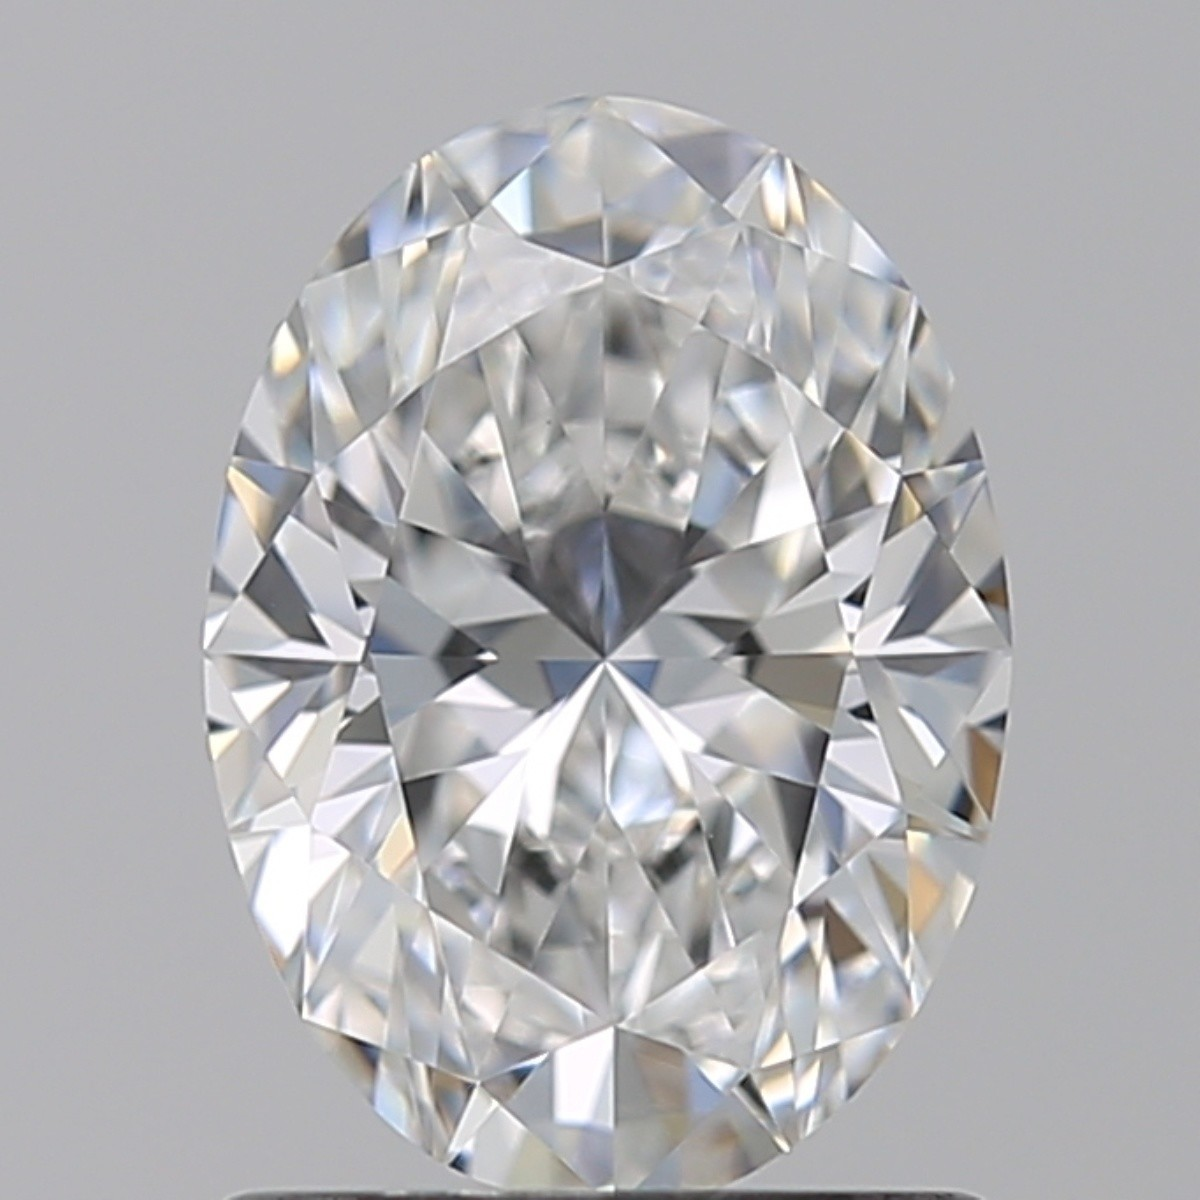 1.07 Carat Oval Diamond (E/VVS2)